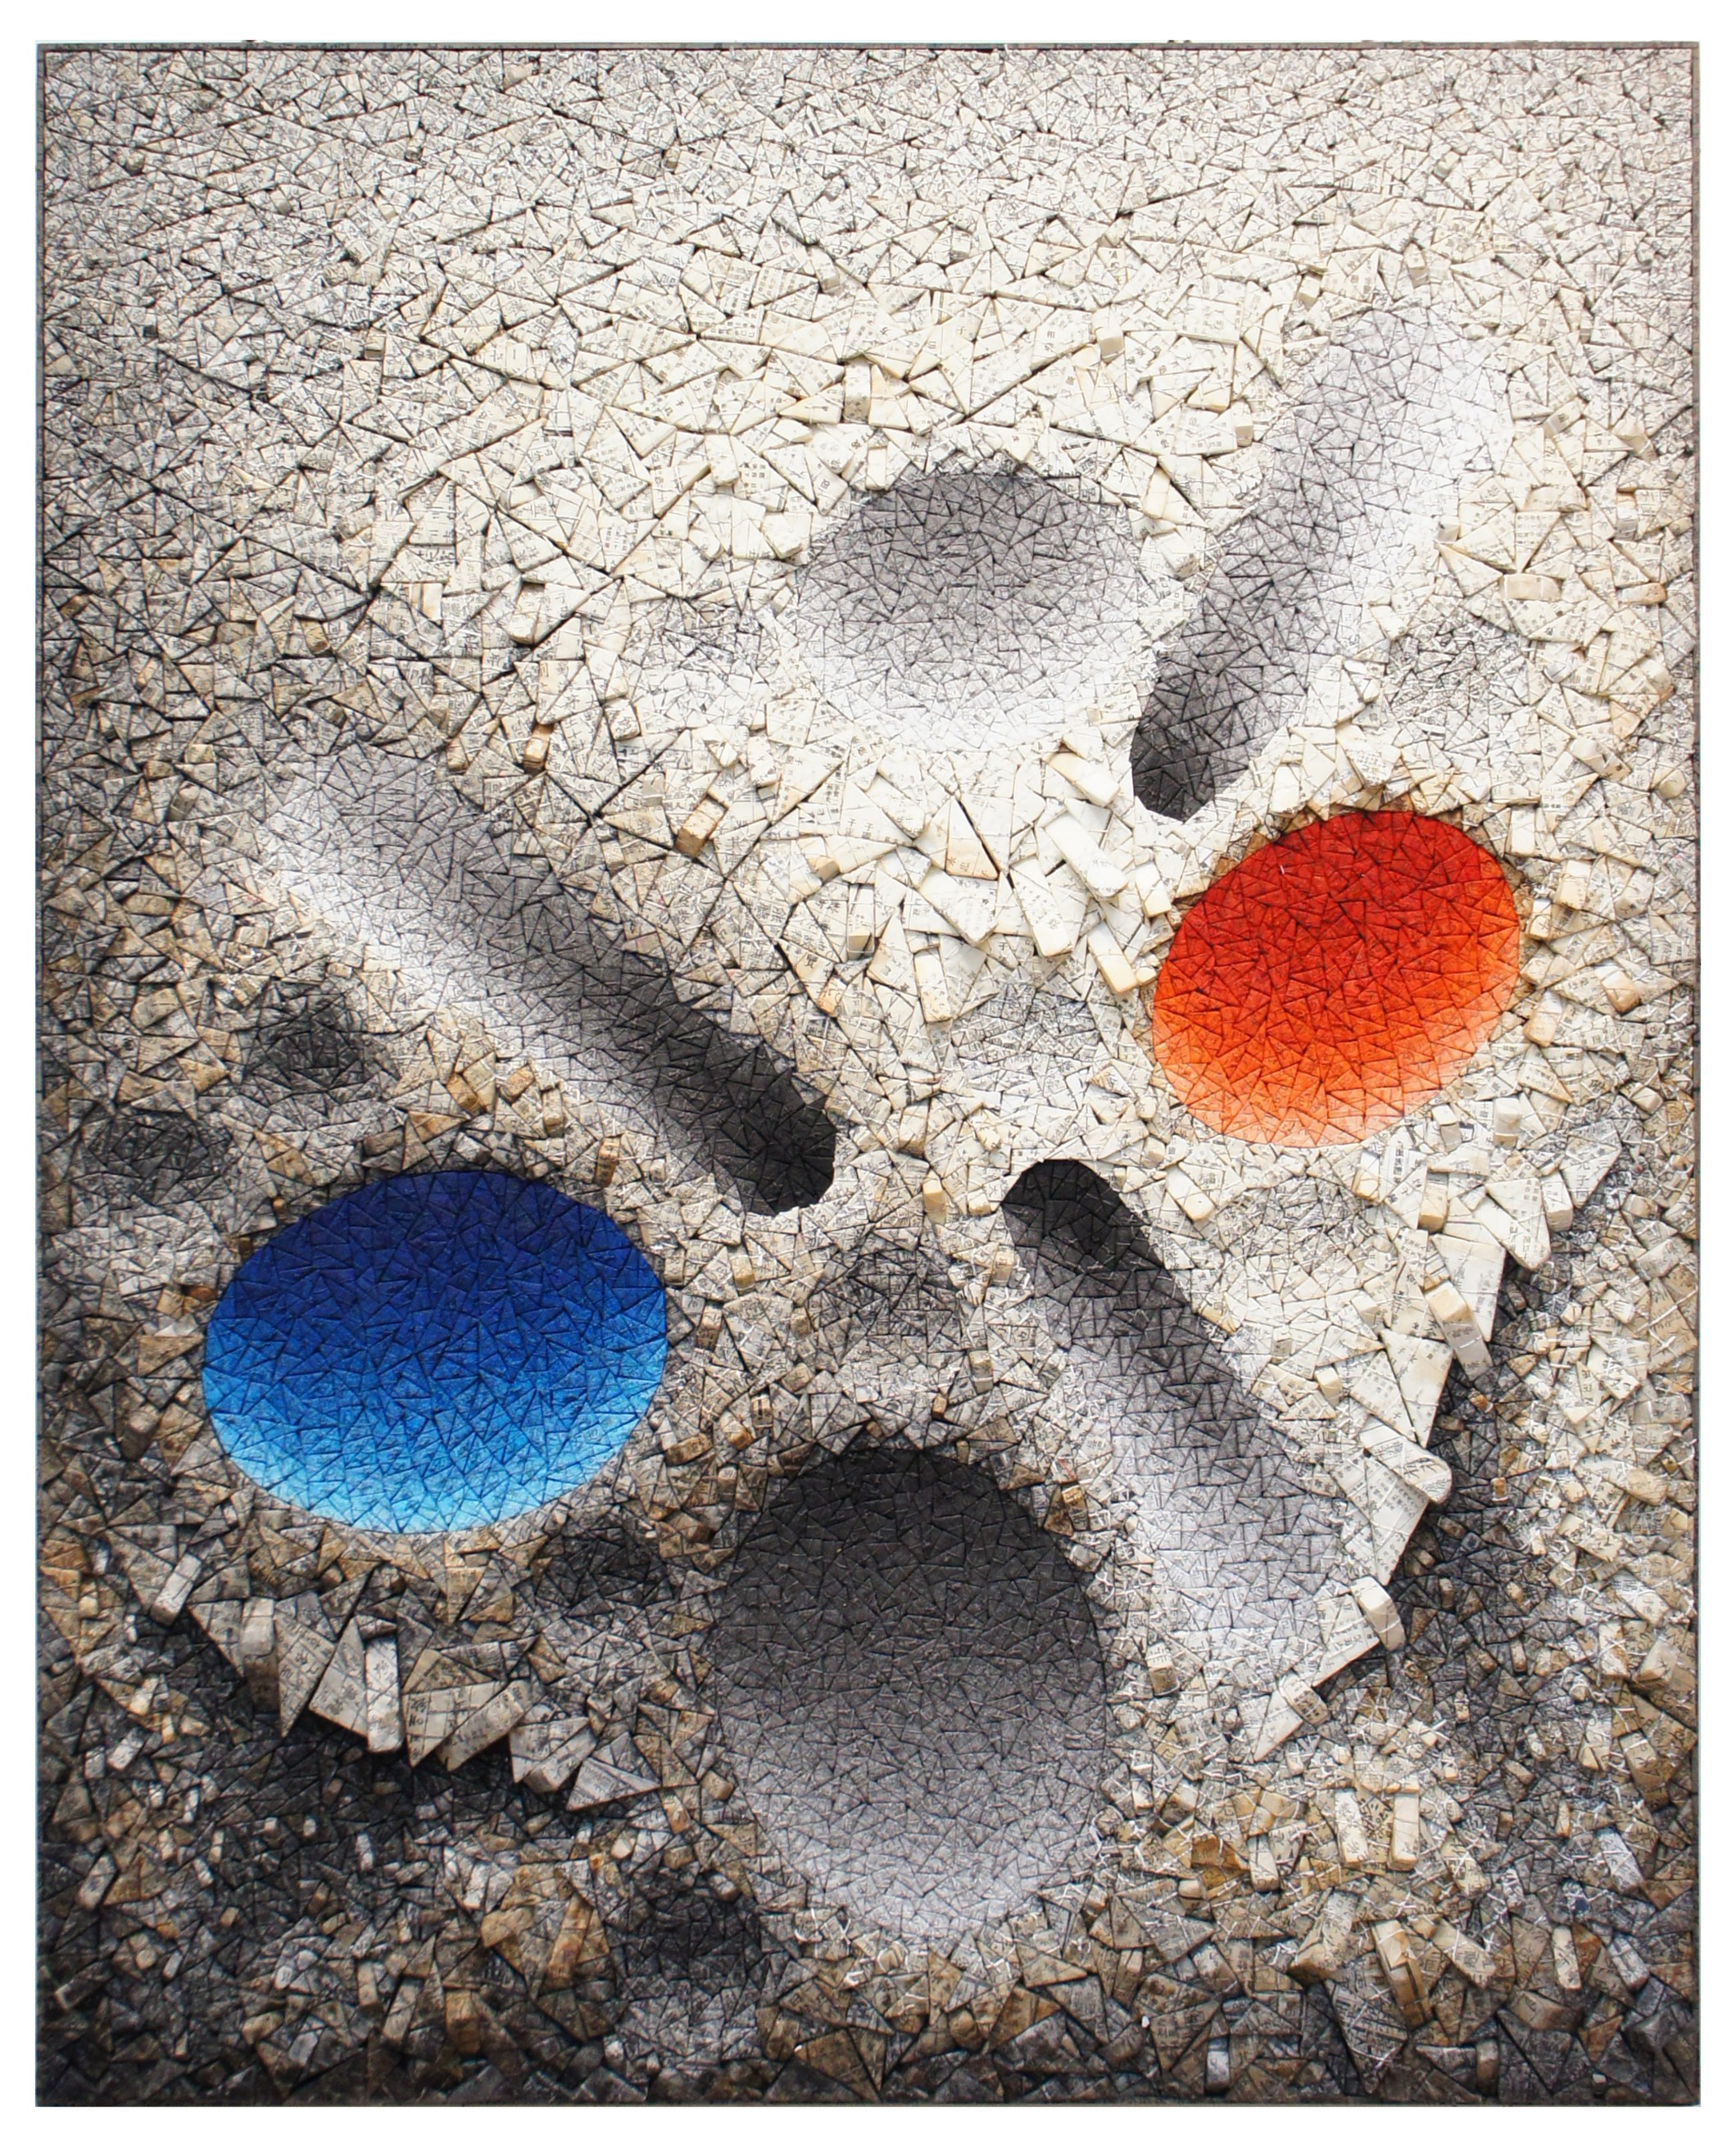 Are You Ready for Art Basel Hong Kong 2019? art basel hong kong 2019 Are You Ready for Art Basel Hong Kong 2019? Chun Kwang Young Aggregation08 D075Blue and Red 2008 PKM Gallery